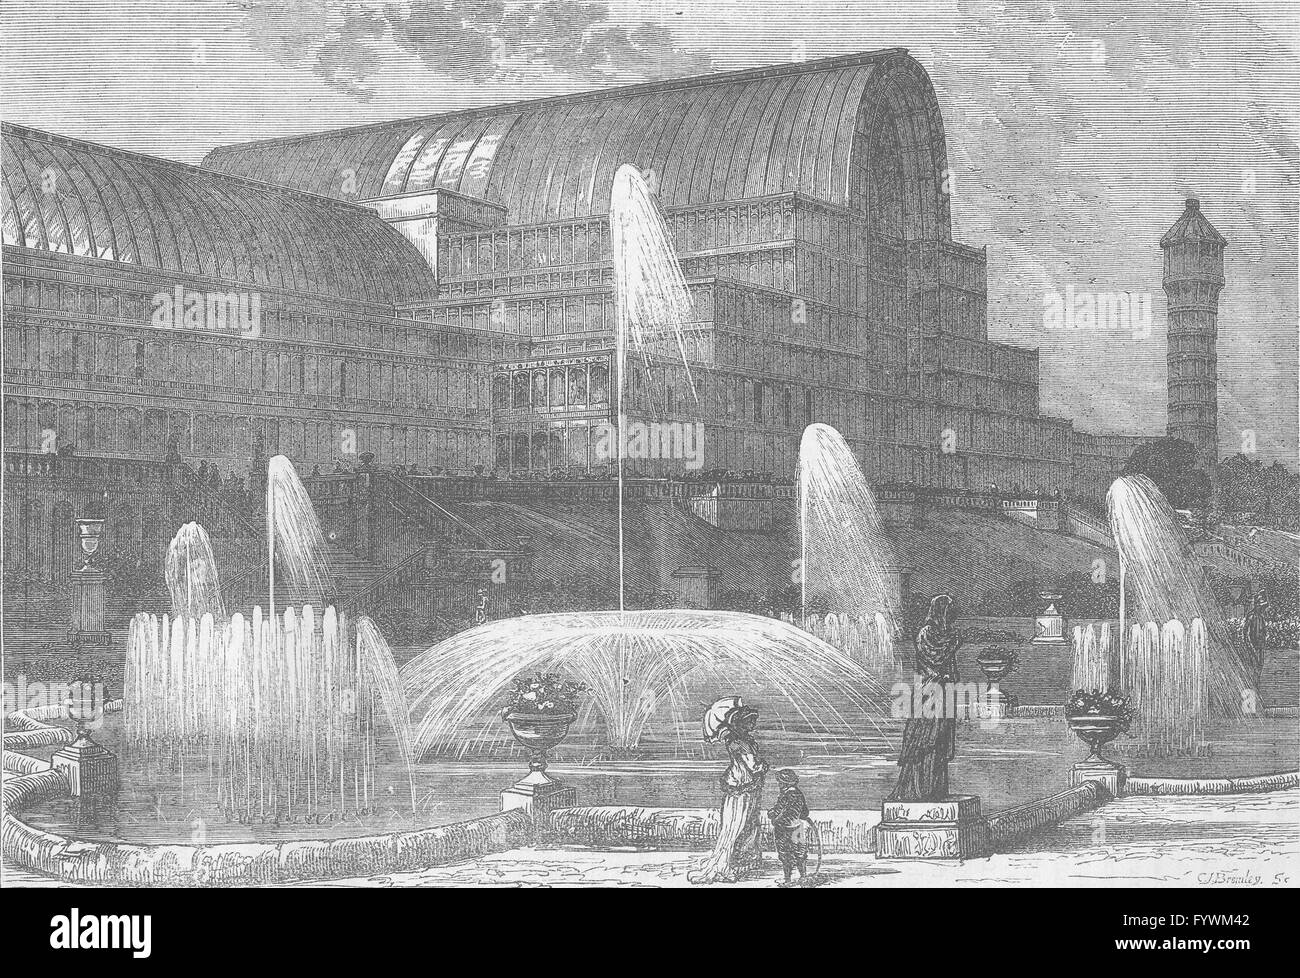 SYDENHAM: The Crystal Palace, from the South. London, antique print c1880 - Stock Image